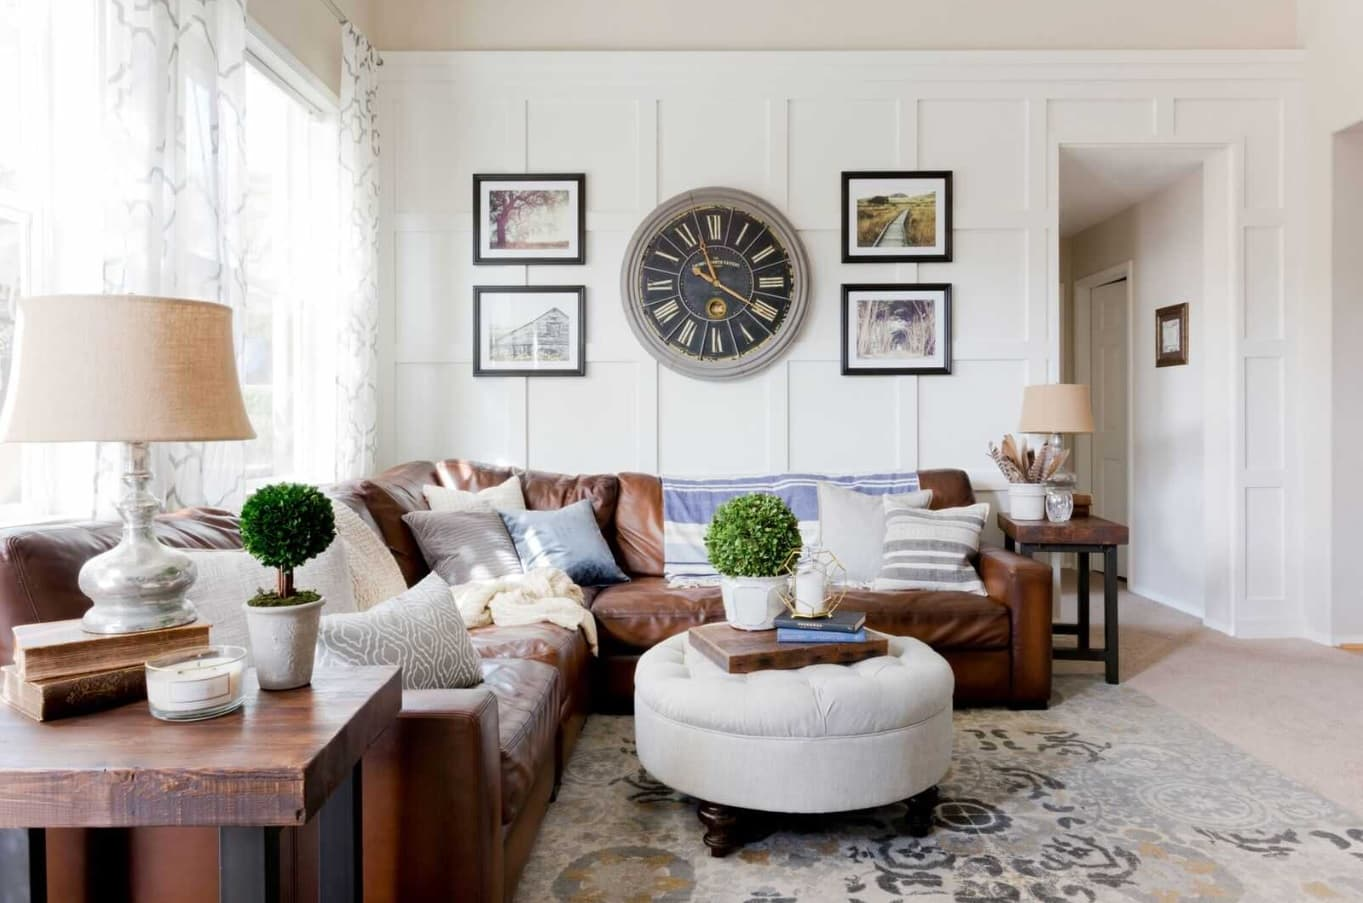 Renting Out Your Property? 5 Easy Design Ideas To Get It Rented Fast. Classic grey interior with panels and beige ceiling